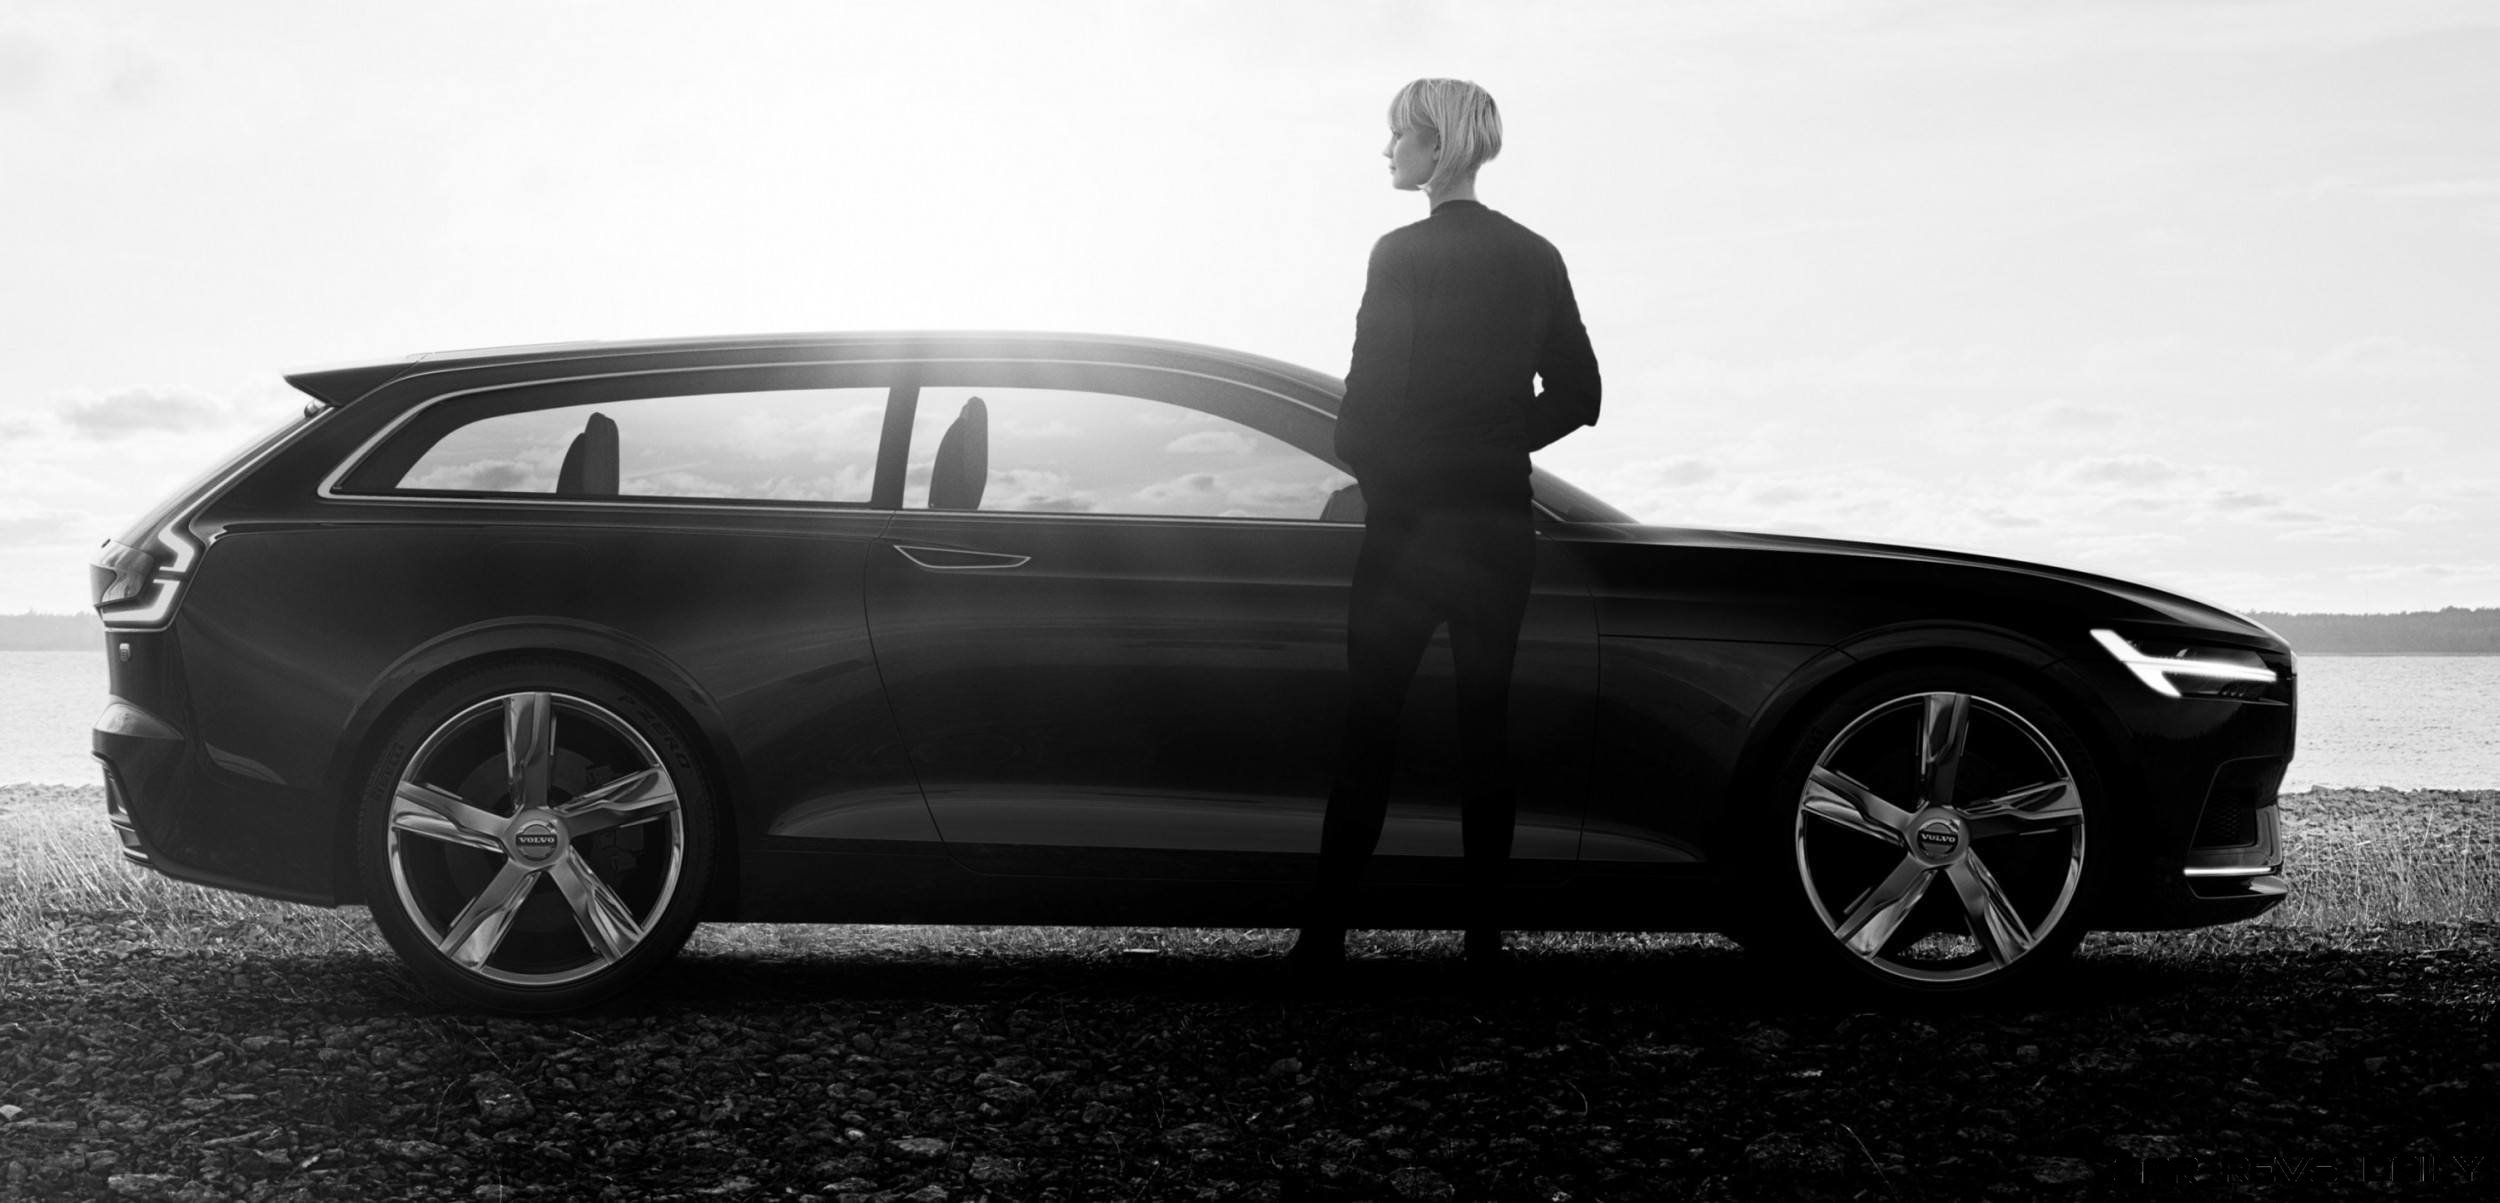 Concept Estate Confirms It! Volvo's New Design Lead Th. Ingenlath Should Be Sweden's Man of the Year 6